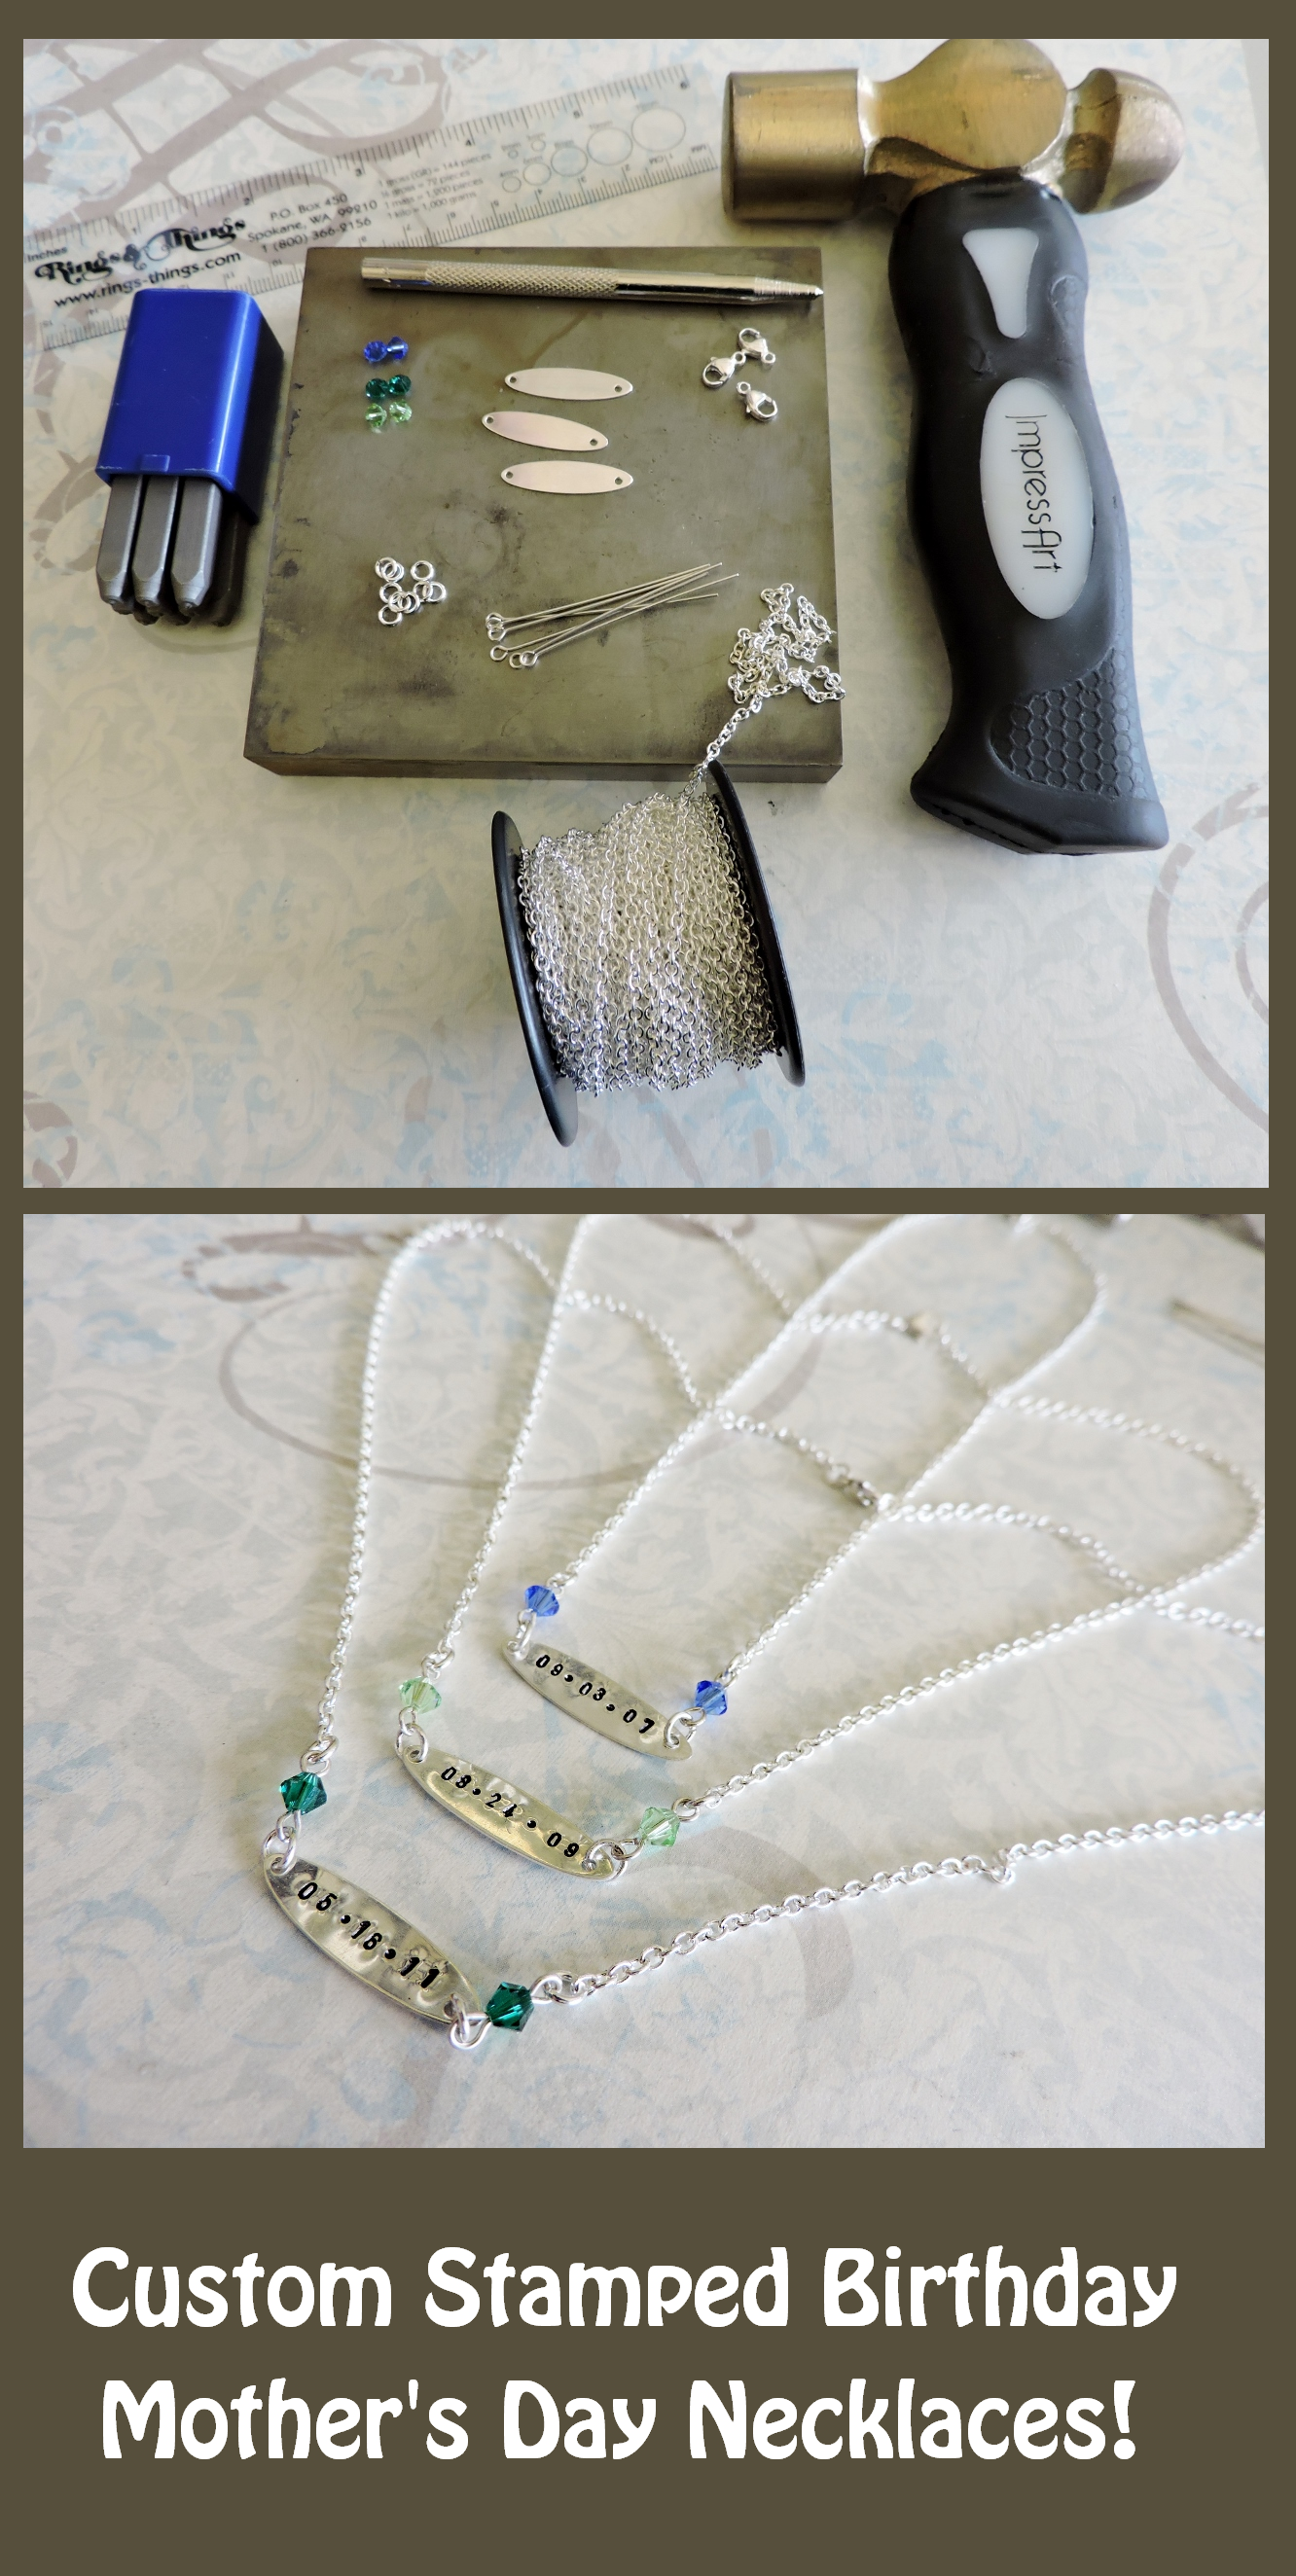 Mother's Day Necklace Project! http://www.rings-things.com/blog/2015/04/07/custom-mothers-day-necklaces-with-birthdays-and-birthstones/